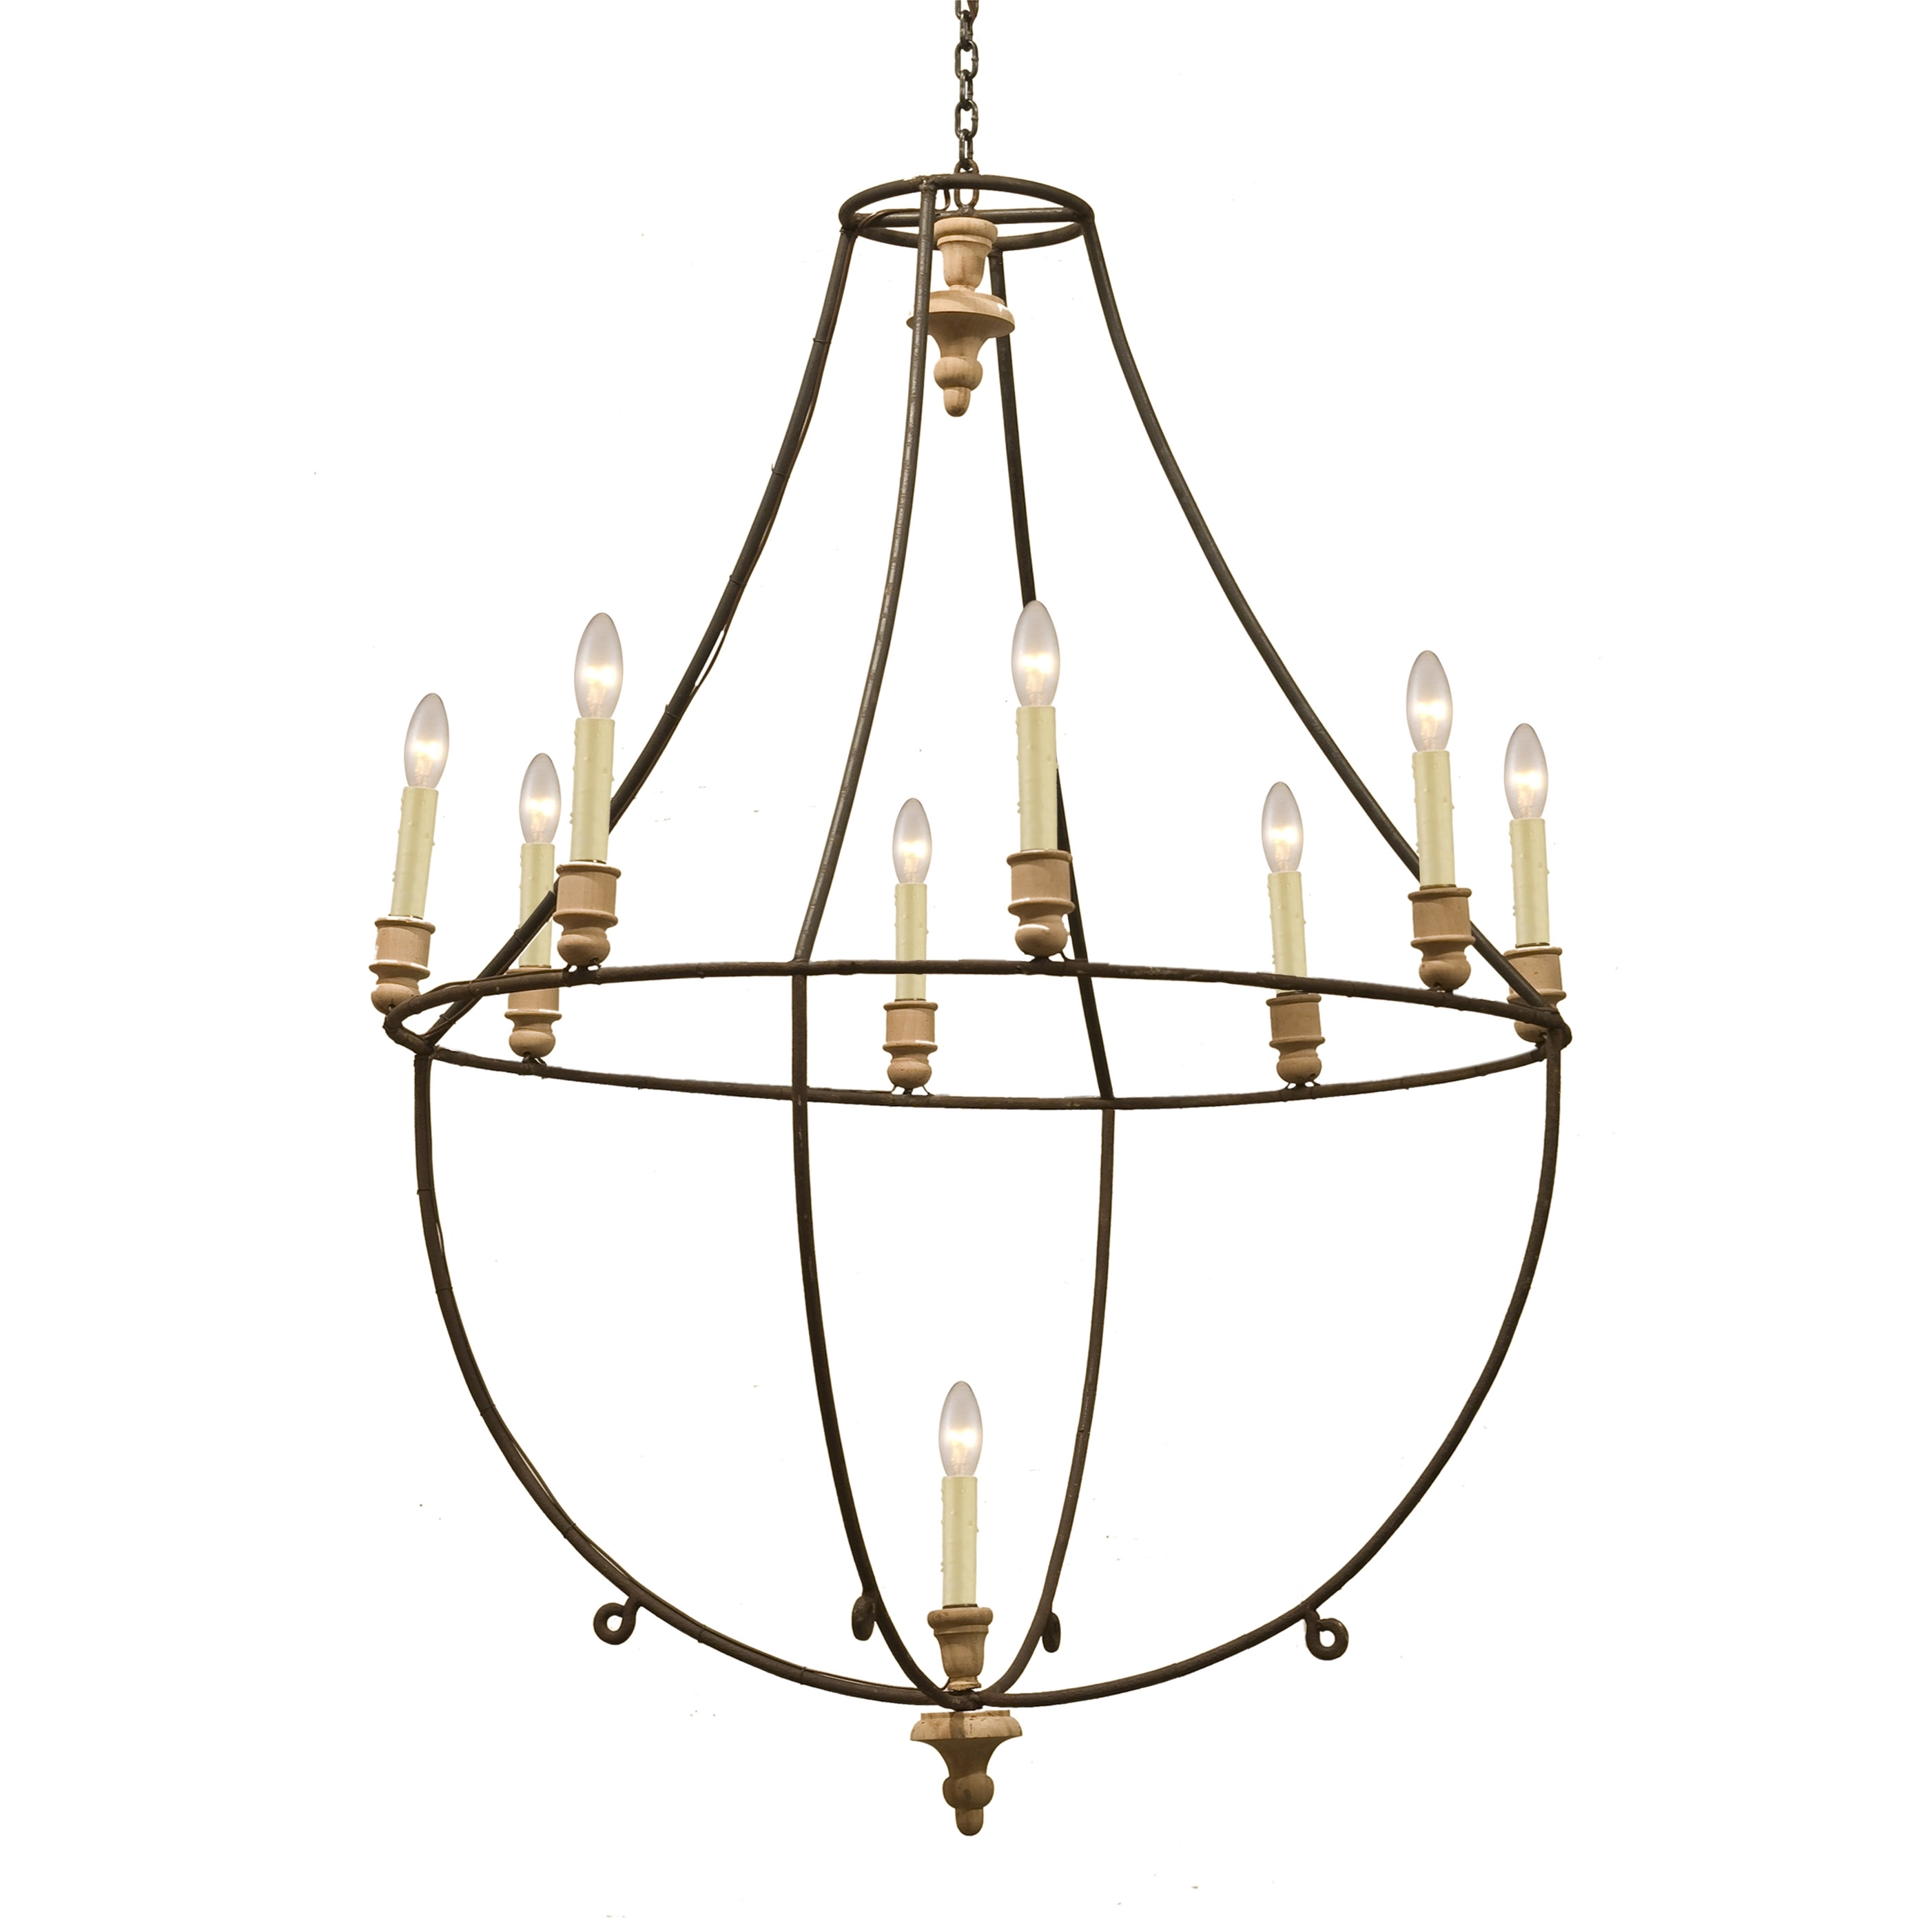 Popular Photo of Large Iron Chandelier